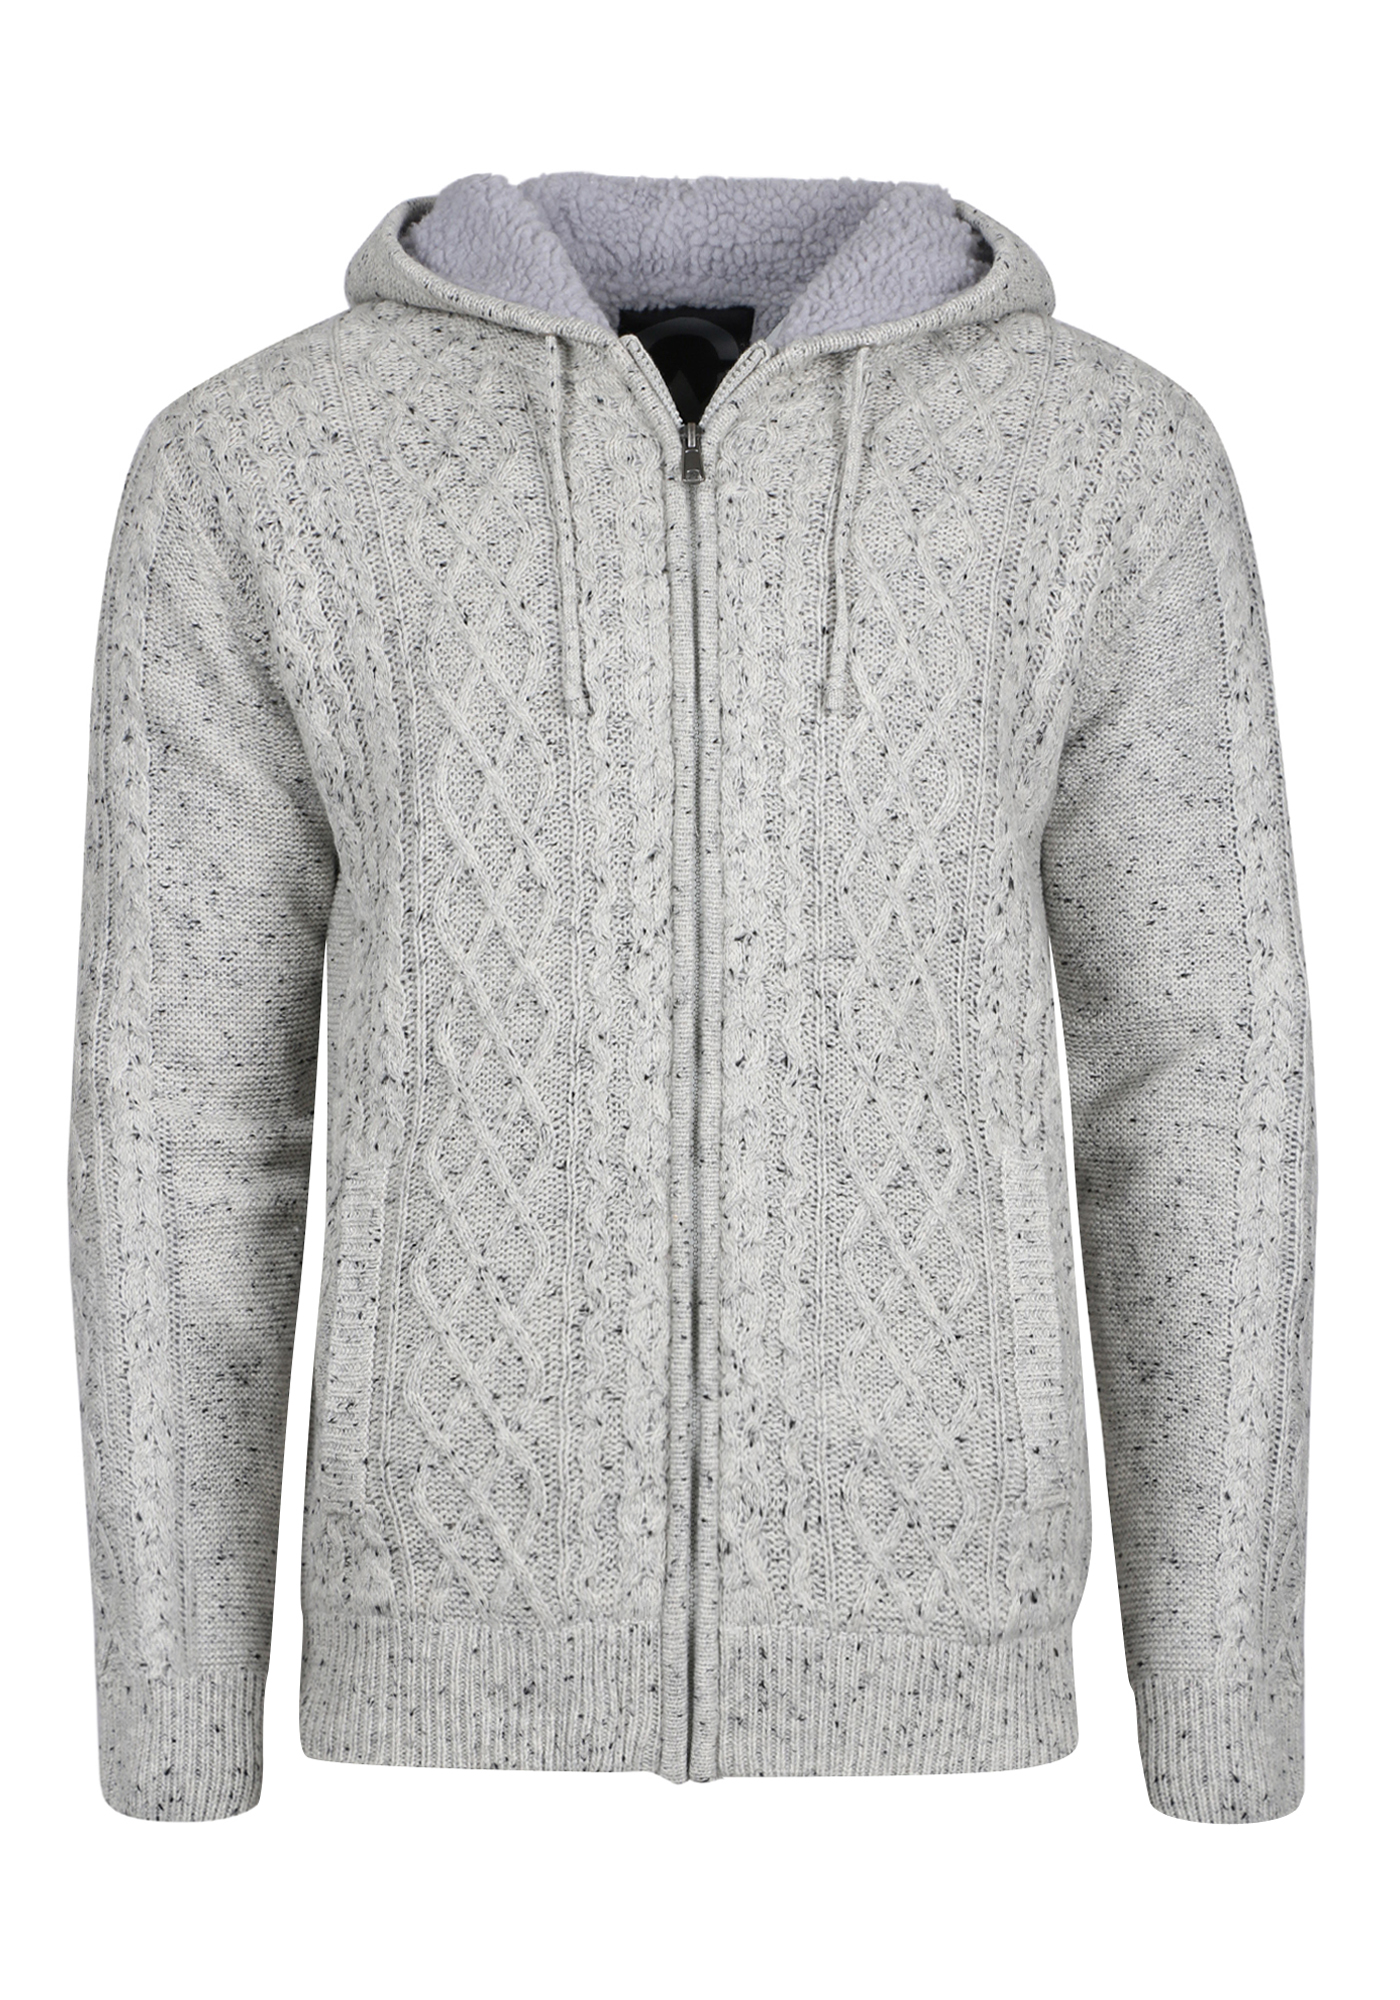 Mens Cable Knit Sweater Jacket